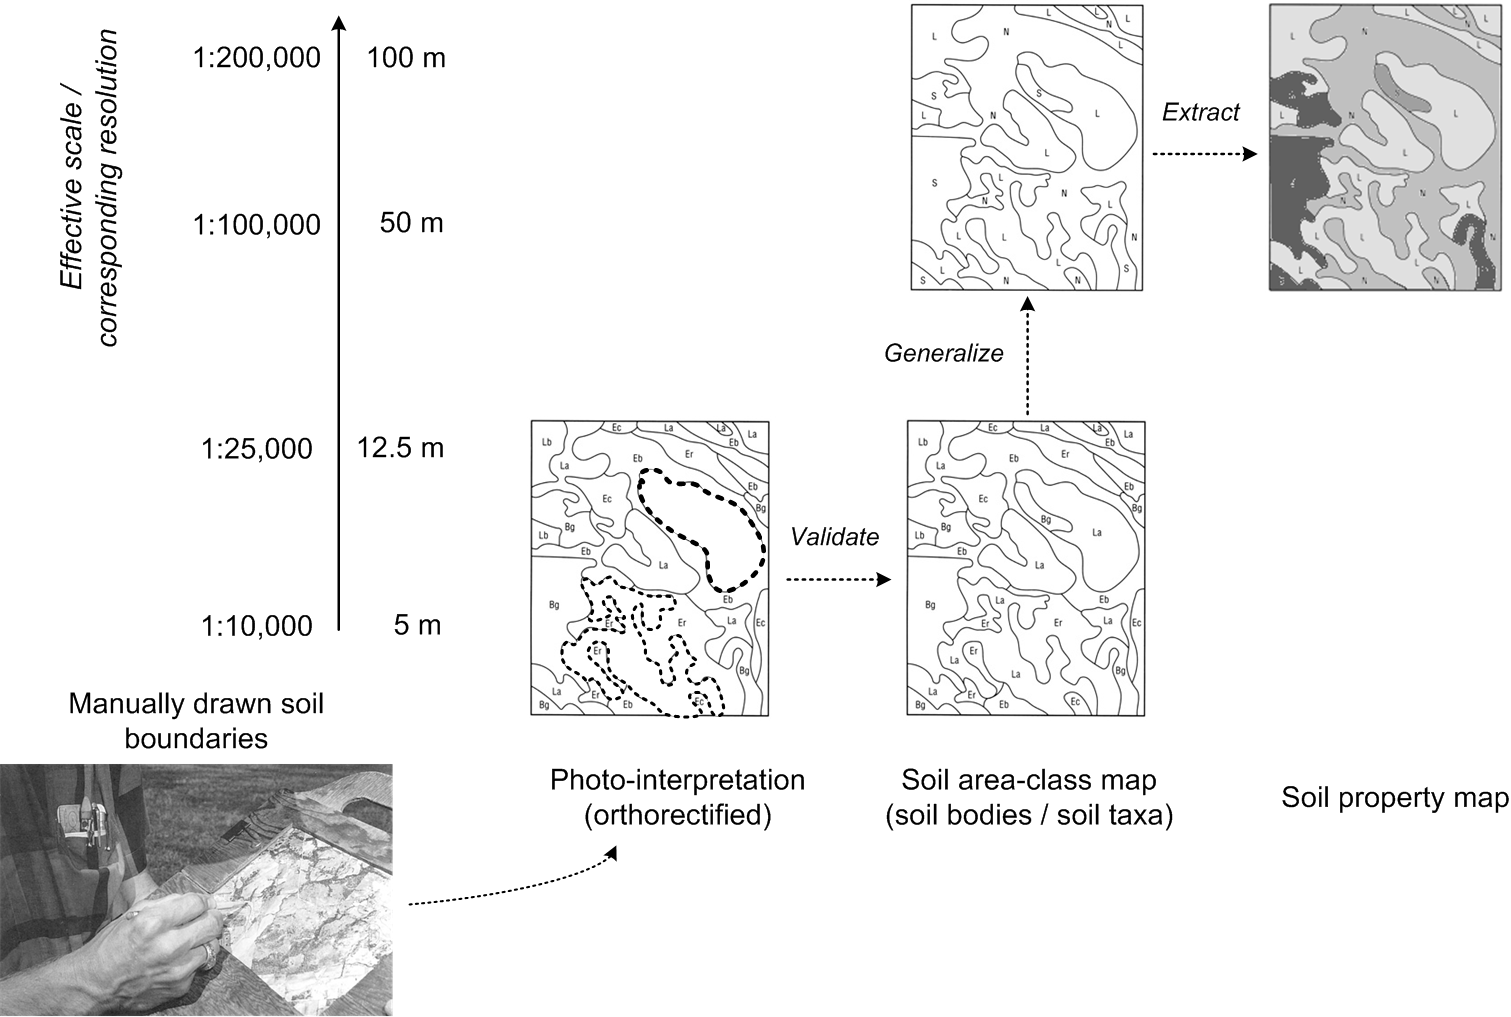 In conventional soil mapping, soil delineations are usually manually drawn polygons representing (assumed) bodies of homogenous soil materials (often geomorphological units). These are first validated in the field before a final area-class map is produced, which can then be generalized and used to extract soil property maps. After USDA Soil Survey Manual.